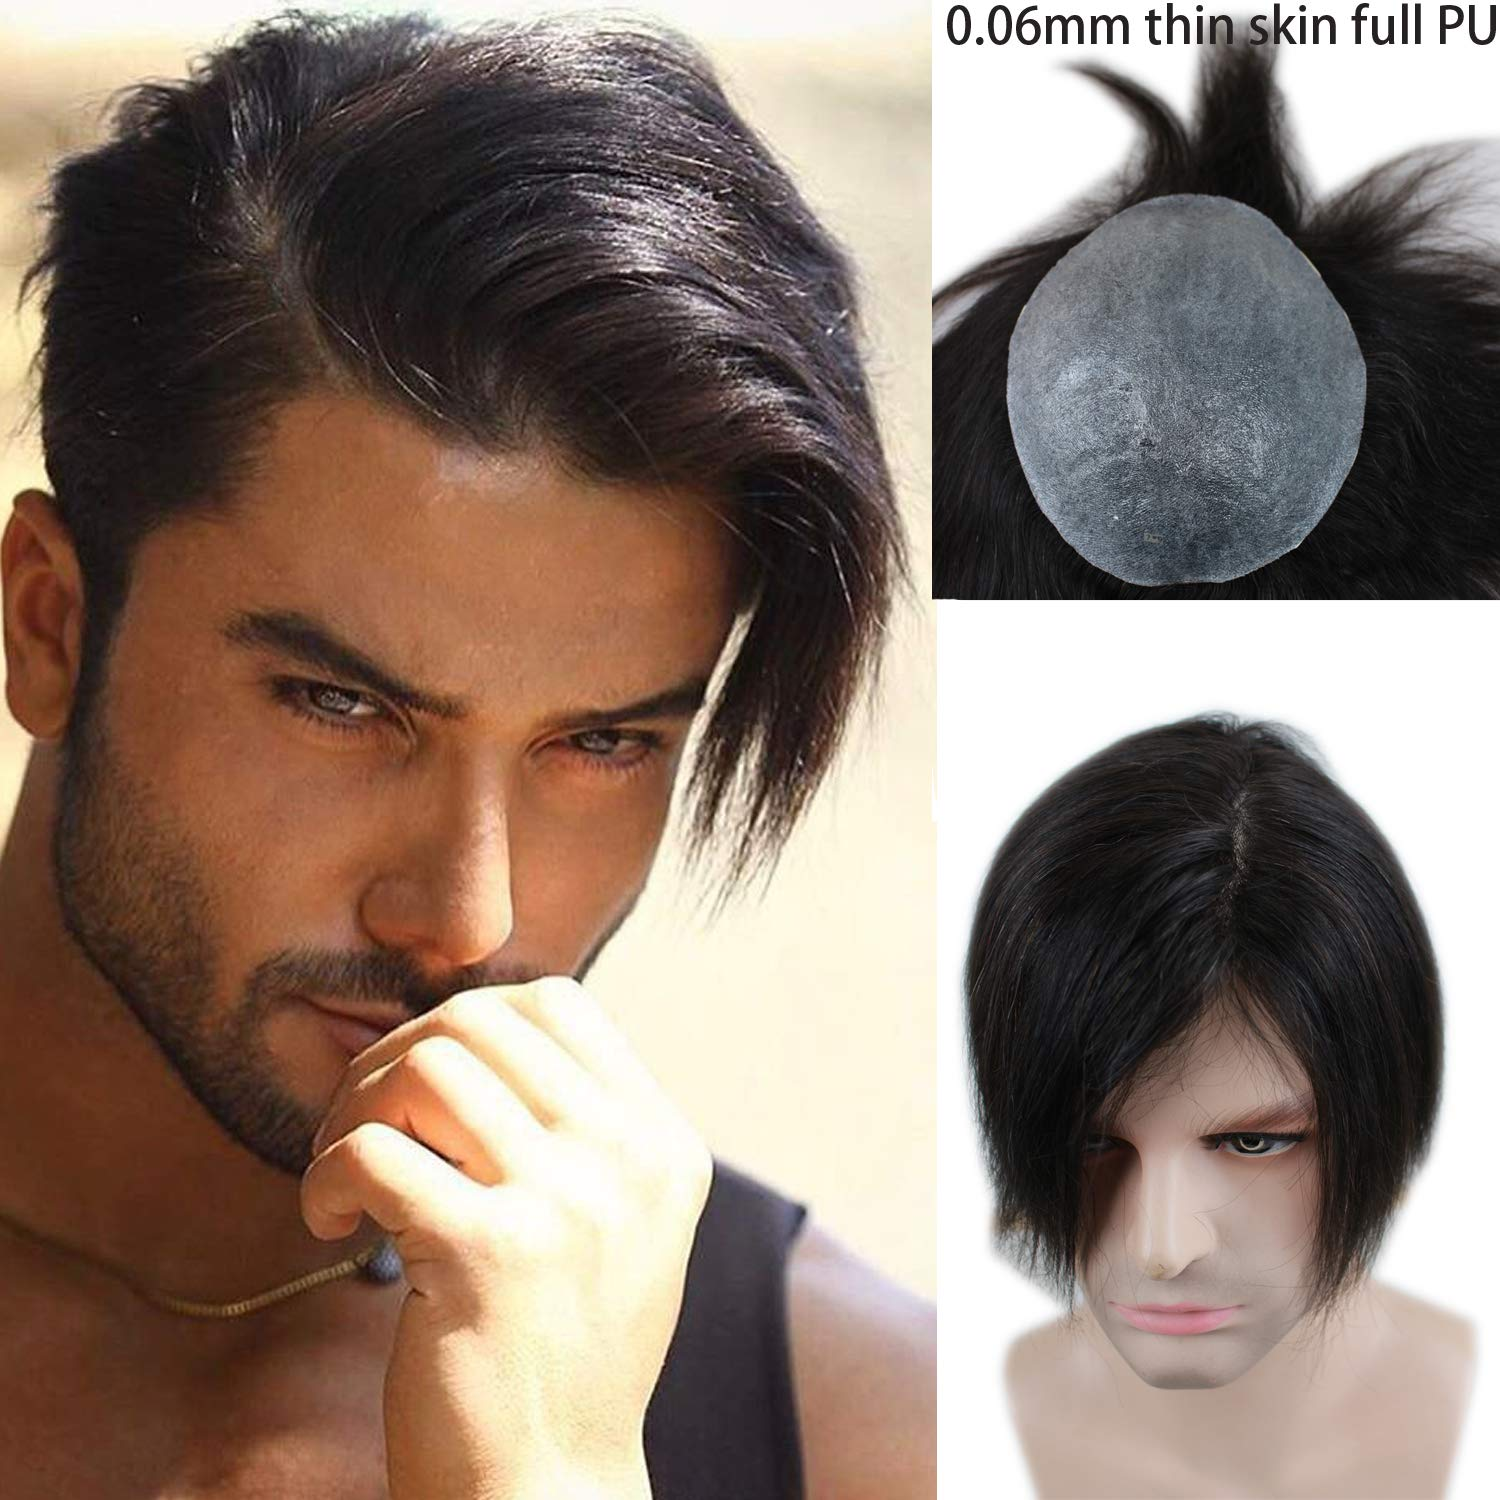 Rossy&Nancy European Virgin human Hairpiece for Men's Toupee Ultra Transparent Thin Skin PU Replacement Hair Pieces 10''x8'' Base Size Natural Black Color by Rossy&Nancy